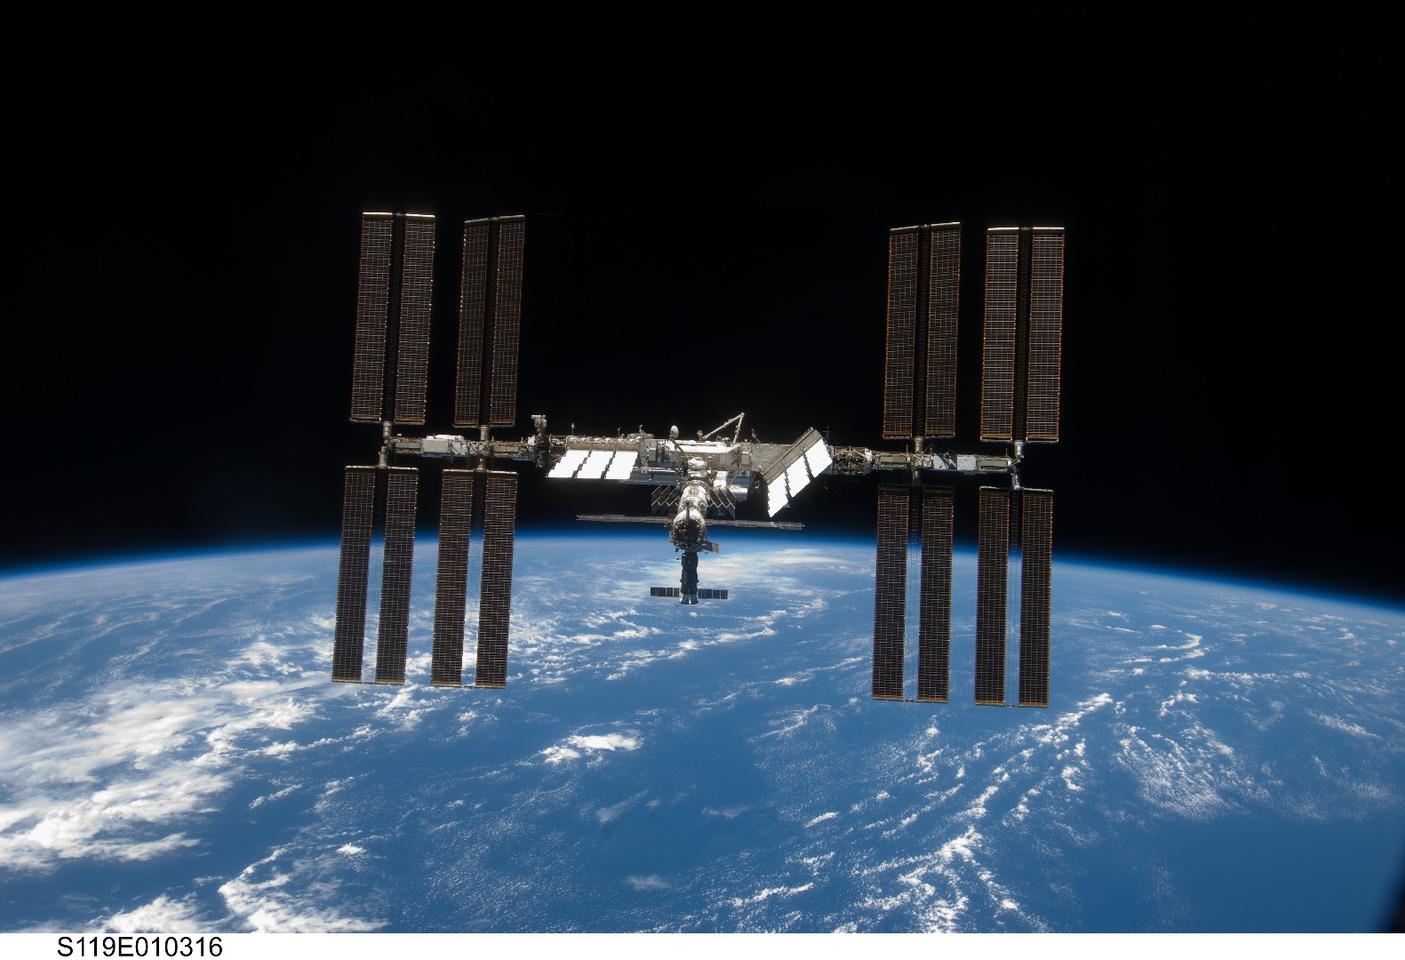 The loss of the Progress 59 spacecraft has forced a rescheduling of visits to the ISS